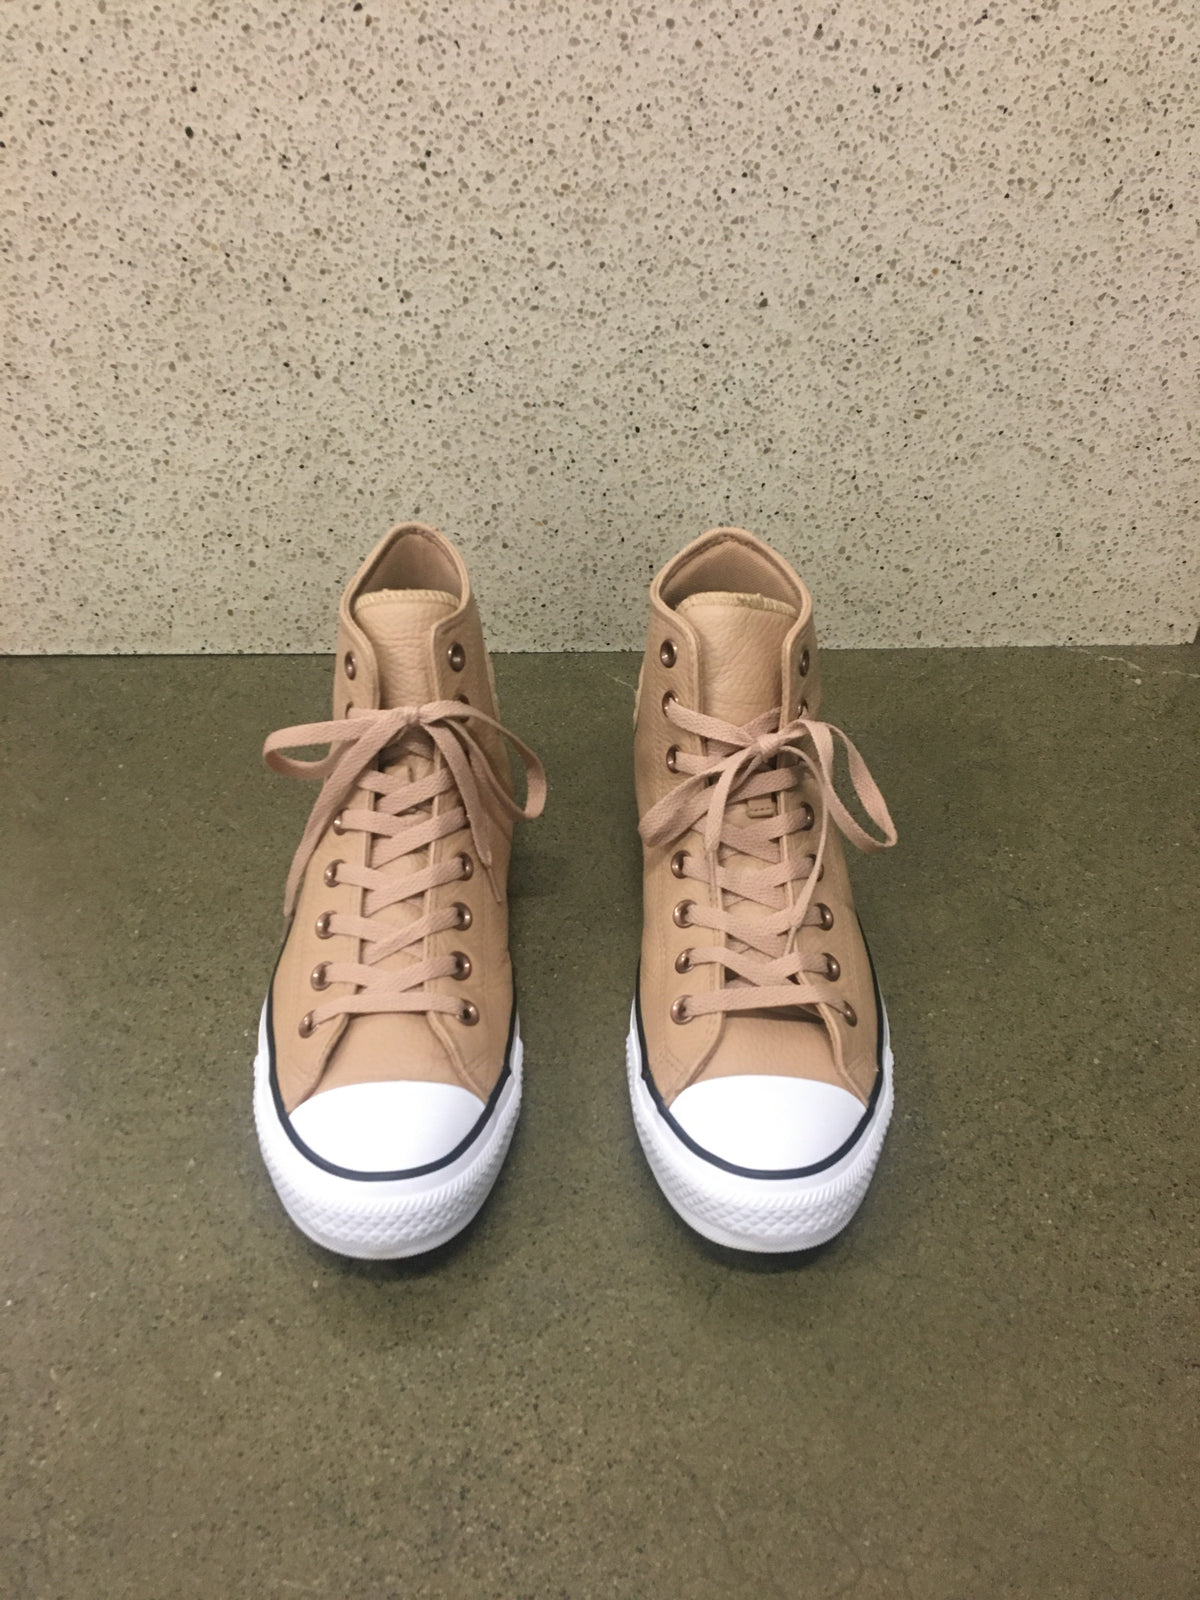 Converse Beige Leather Sneakers